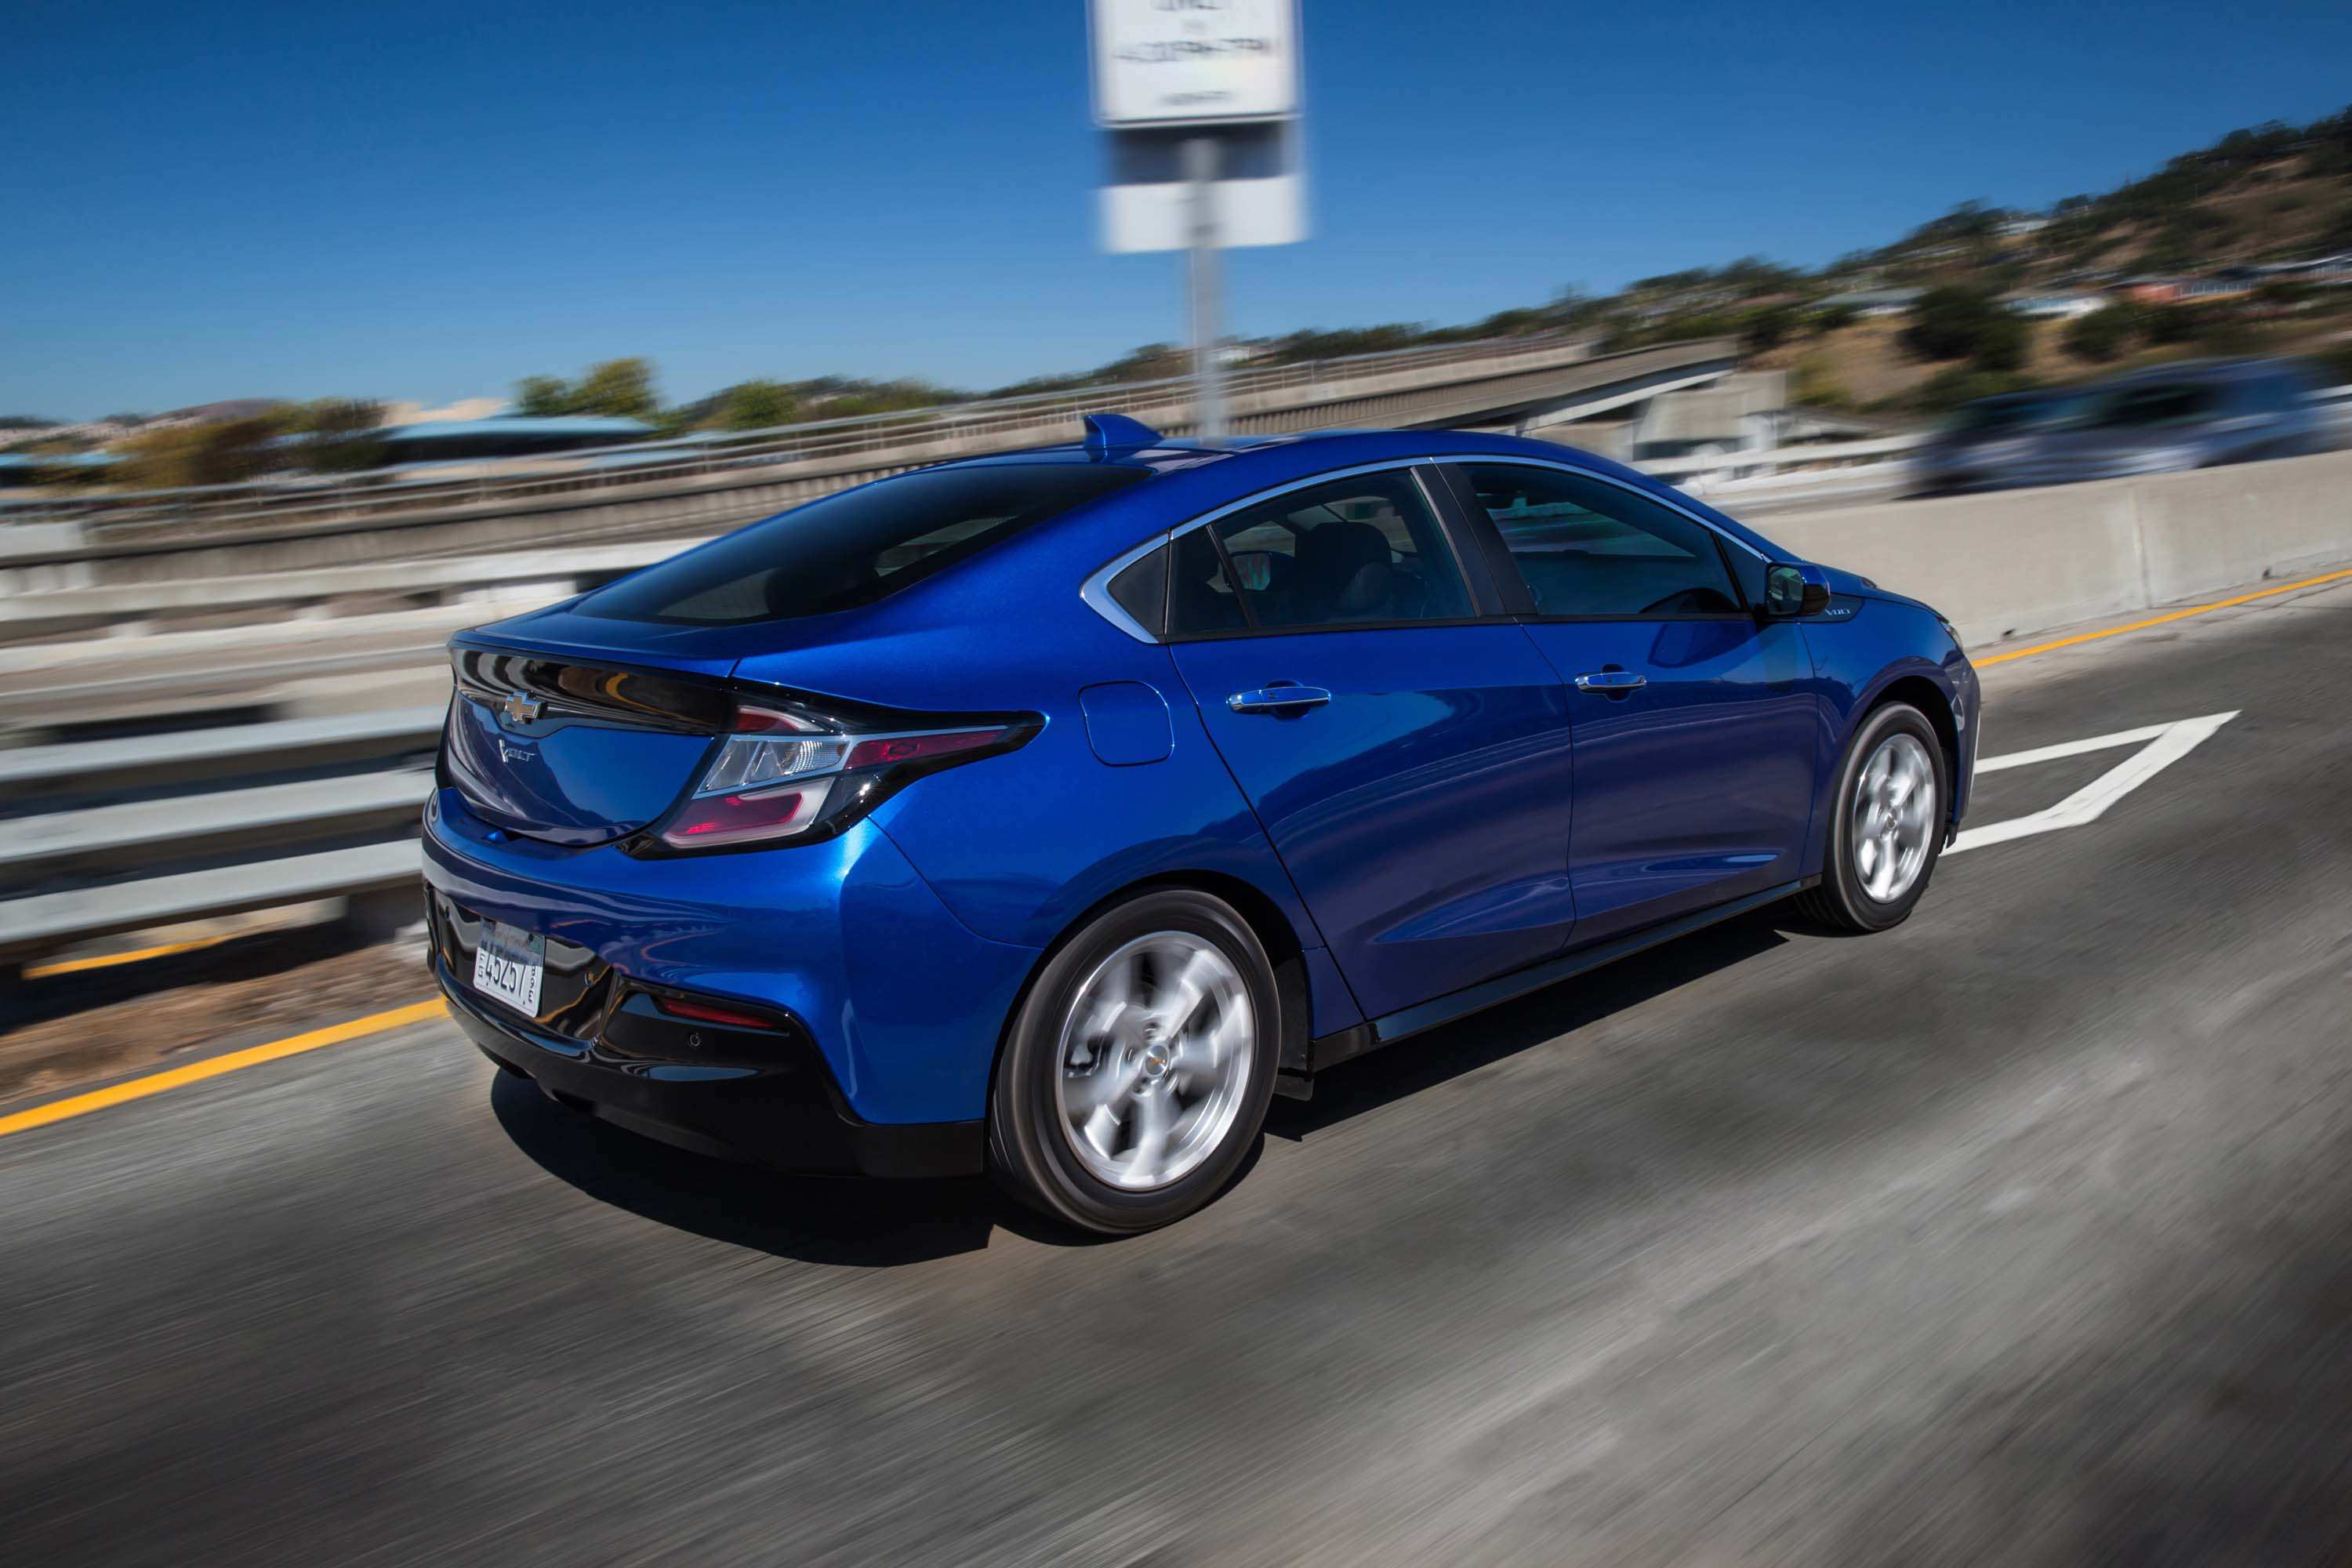 44 The Best Chevrolet 2019 Volt Concept Price with Best Chevrolet 2019 Volt Concept